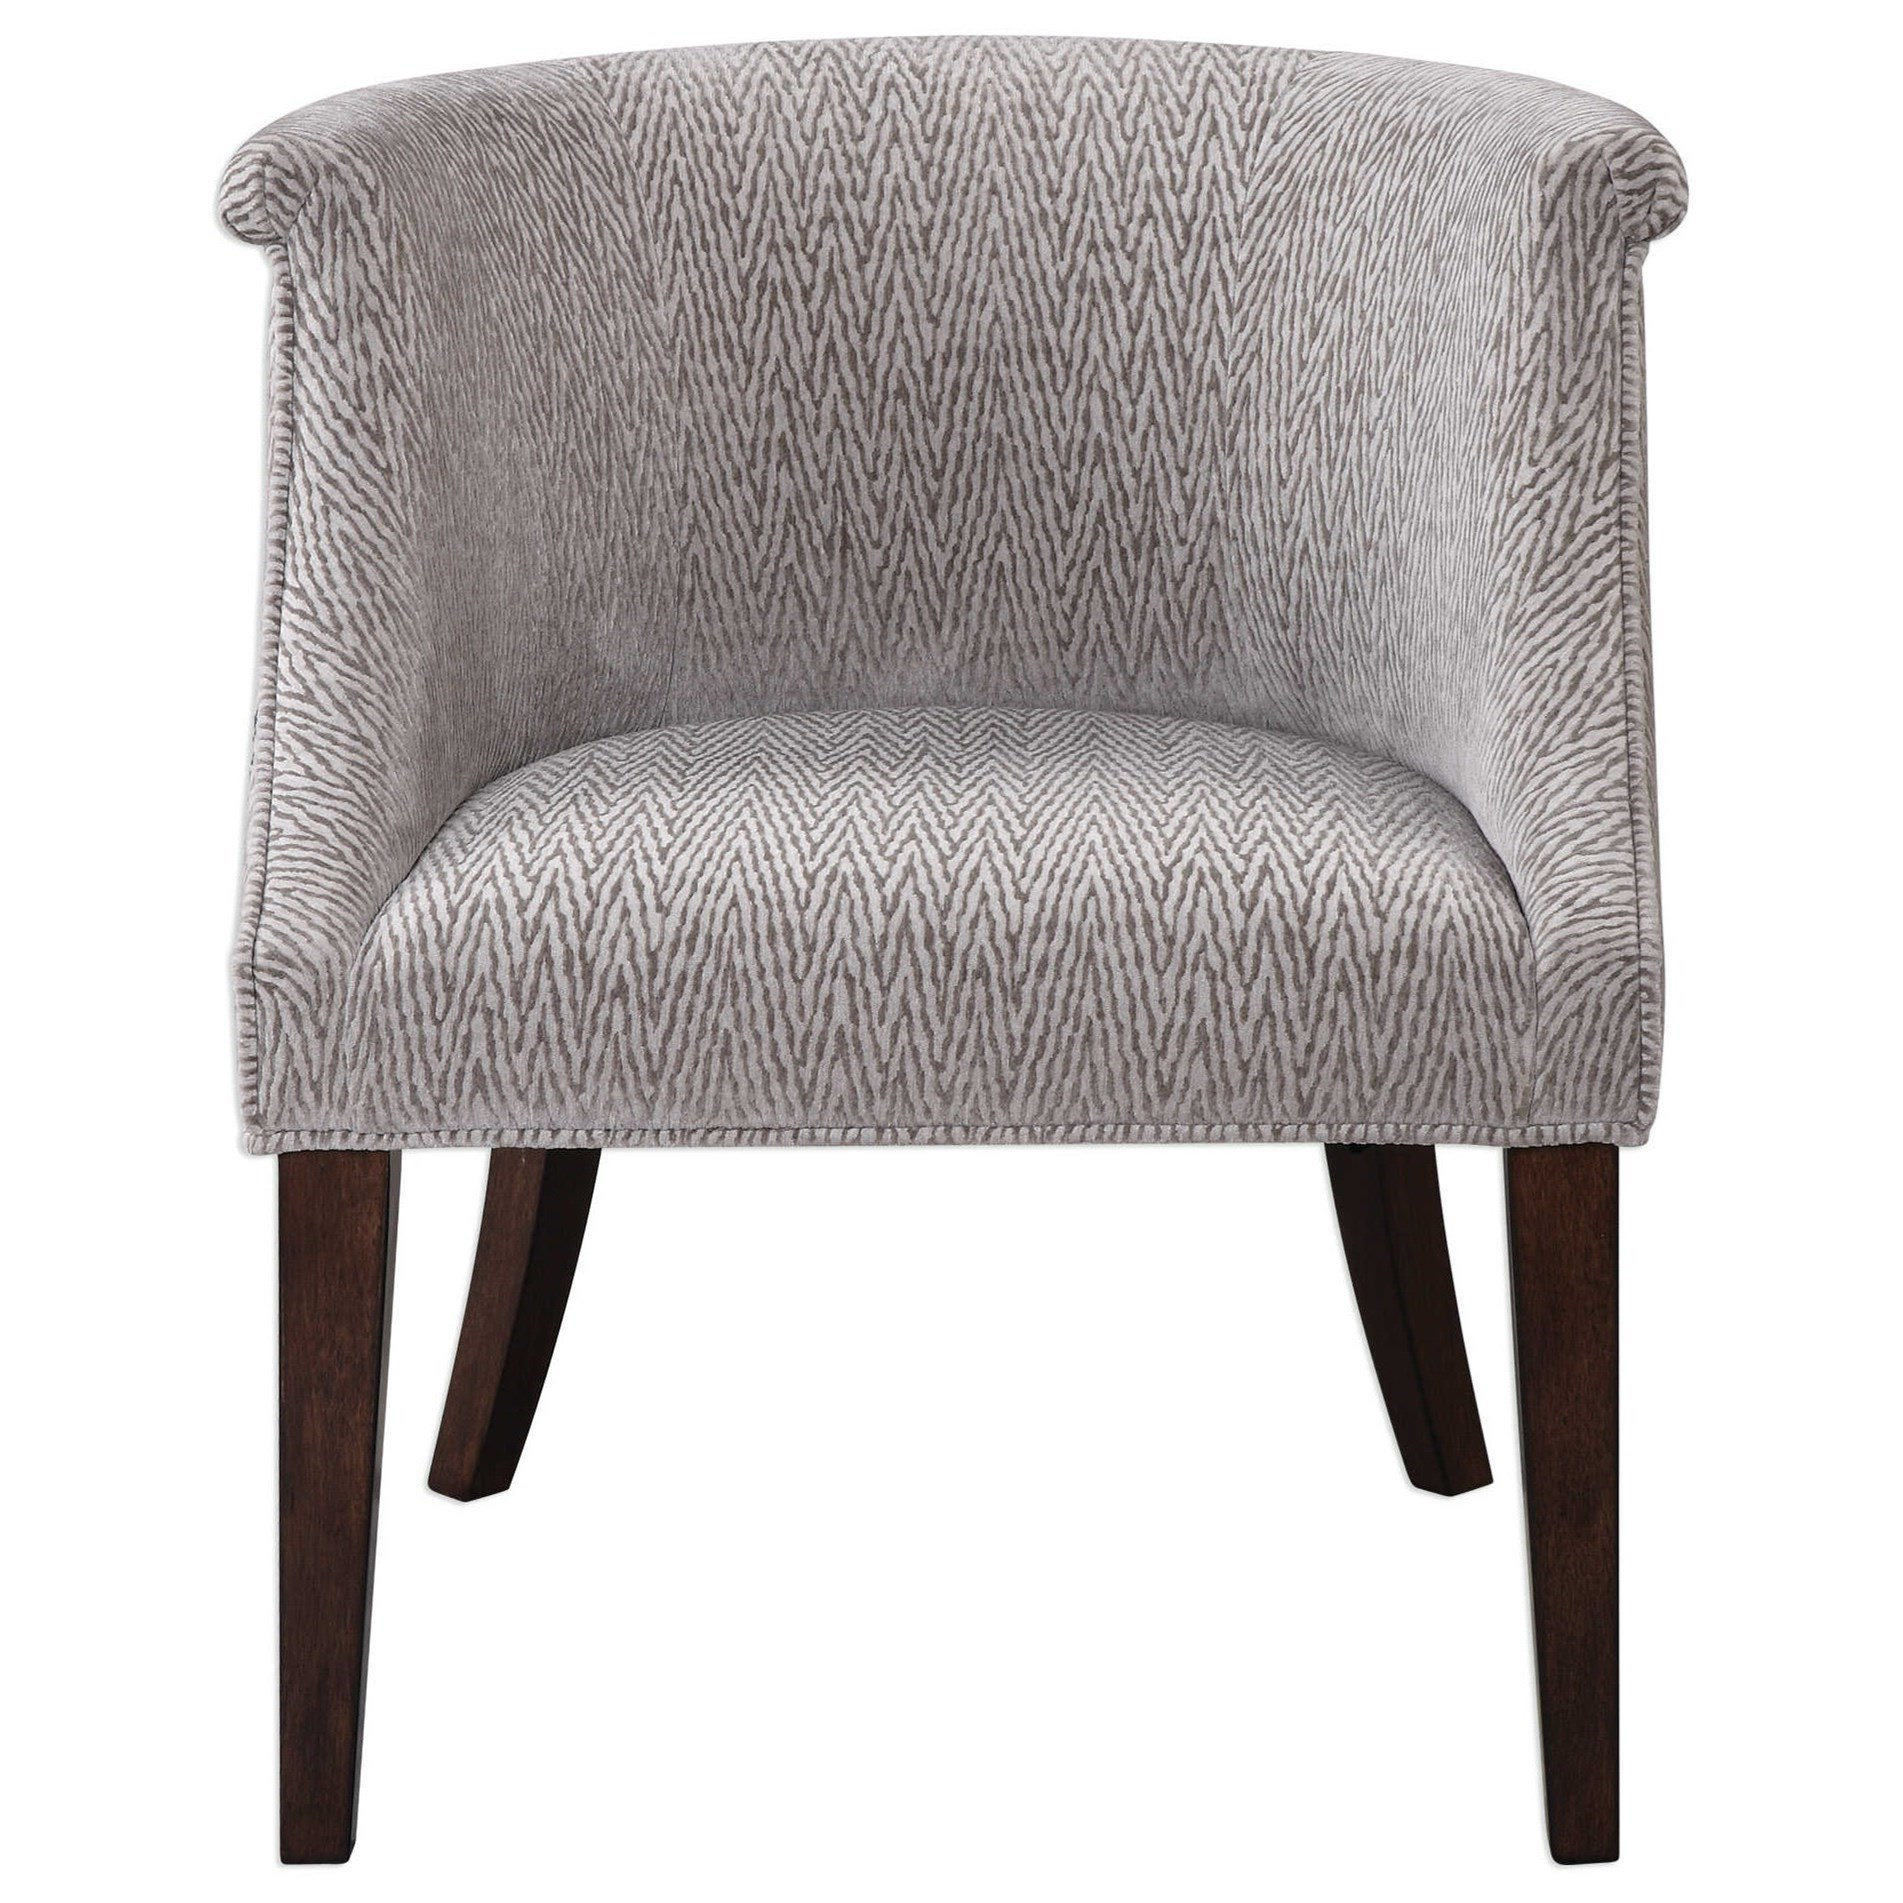 Uttermost Accent Furniture Arthure Barrel Back Accent Chair - Item Number: 23345